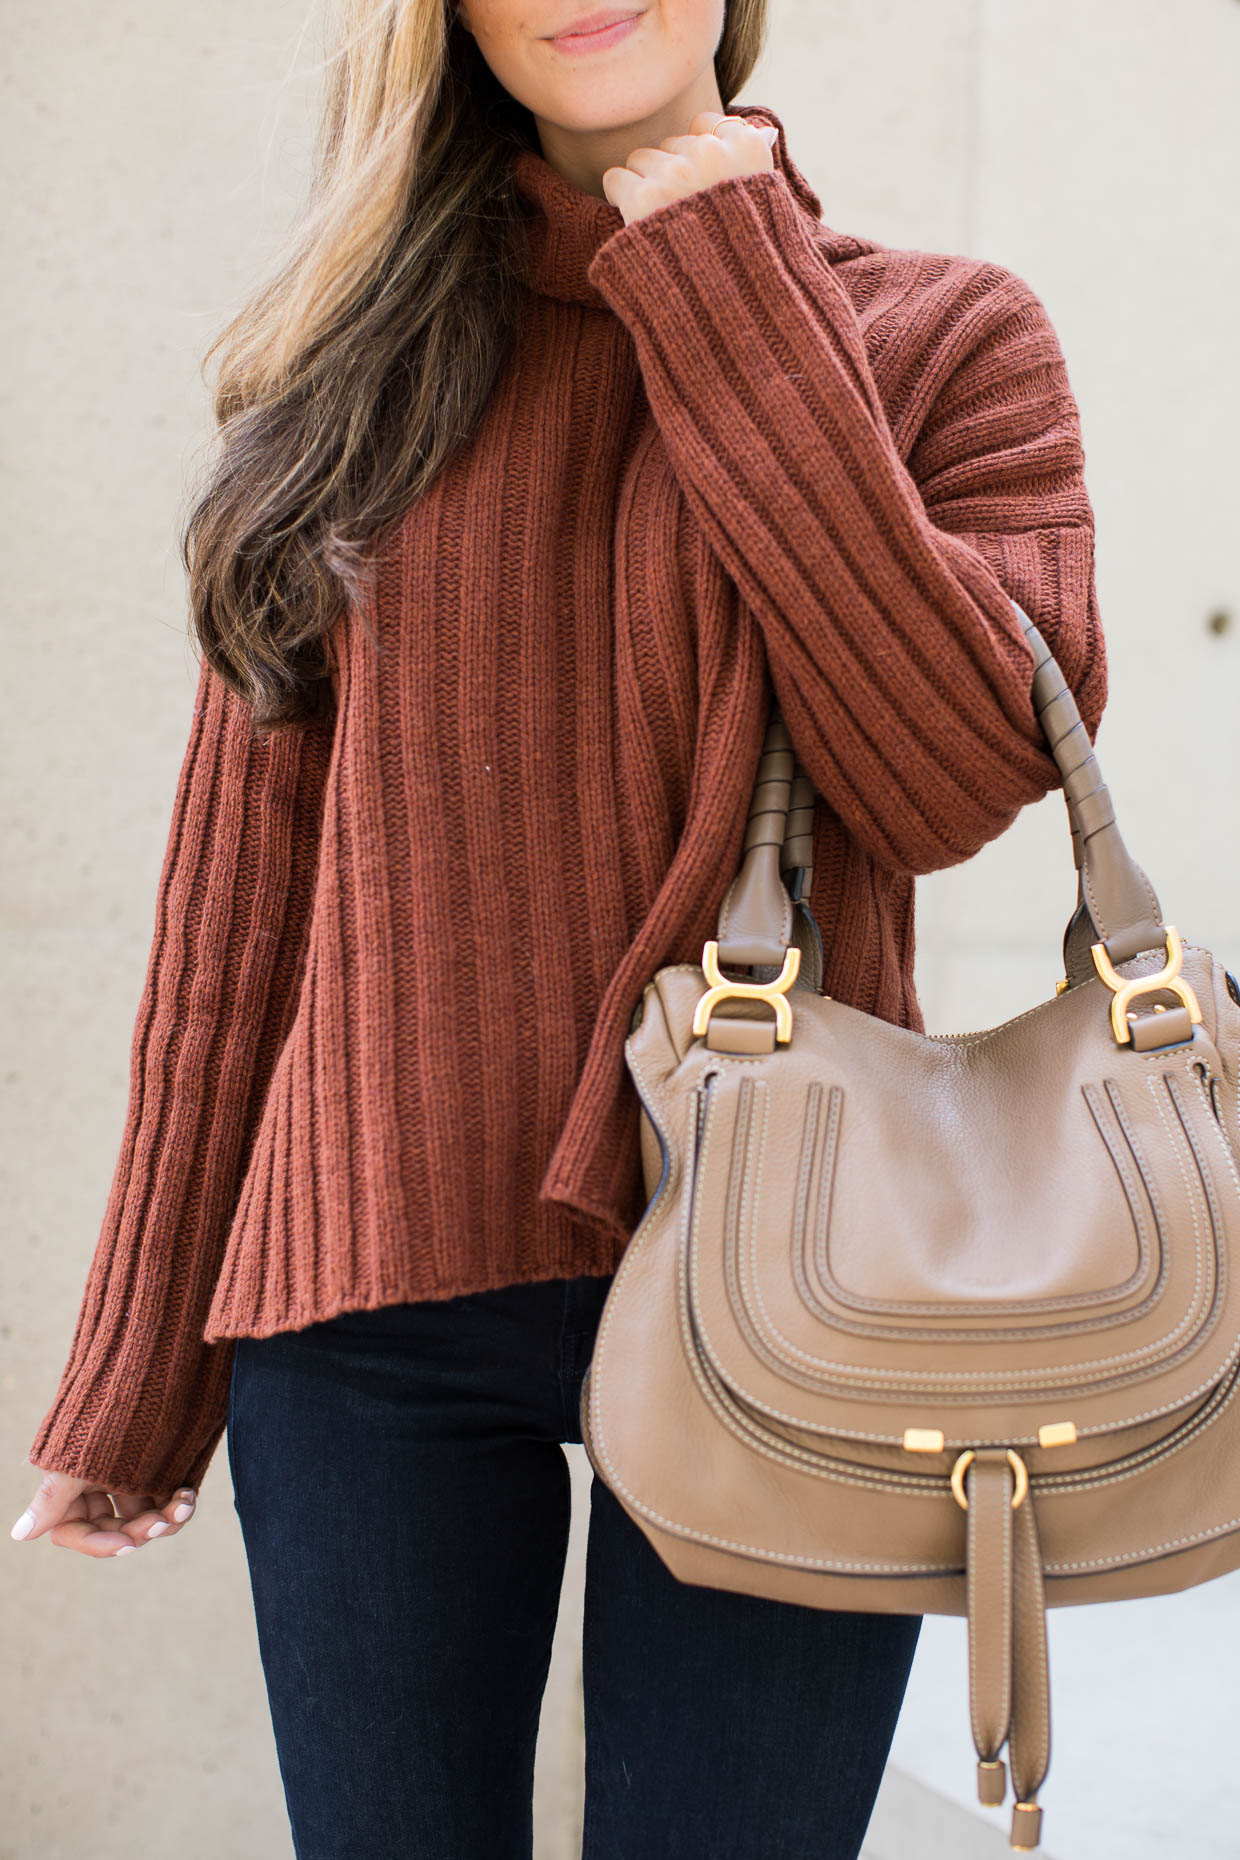 """Fashion blogger the Darling Detail is wearing a J.O.A. Turtleneck Sweater, FRAME """"Le High Skinny"""" High Rise Crop Jeans, Chloe 'Marcie - Small' Leather Satchel, and Larsson & Jennings 'Lugano' Mesh Strap Watch"""